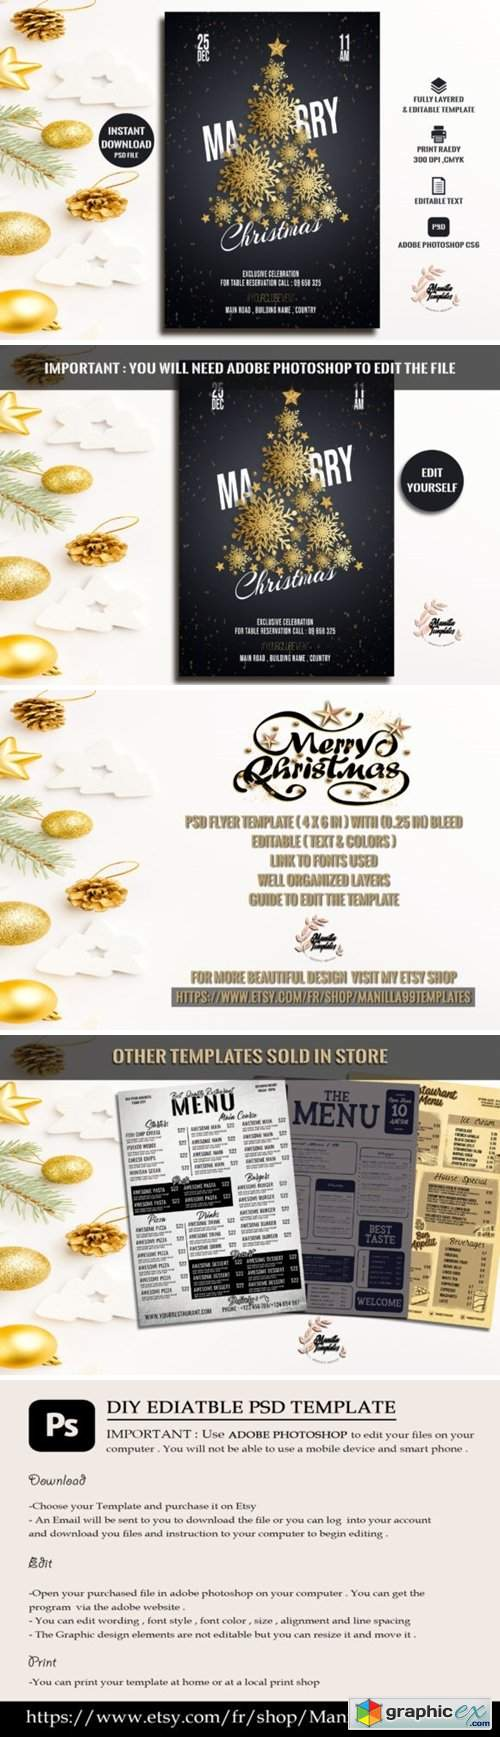 Marry Christmas Invitation